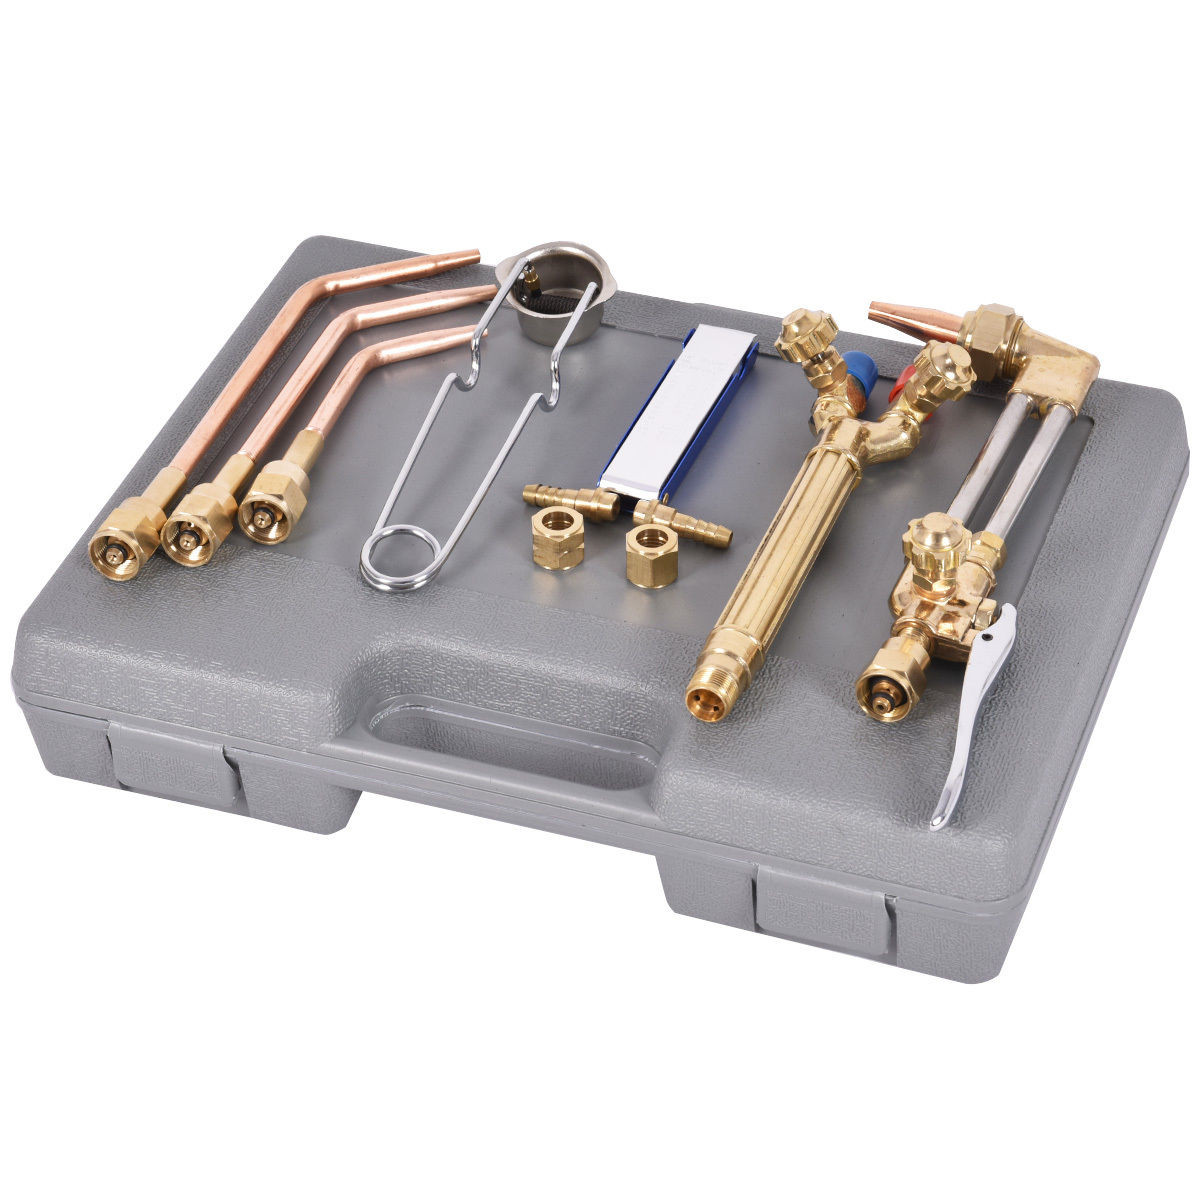 10 Pcs Gas Welding And Cutting Kit Torch Acetylene Welder Tool Set With Case